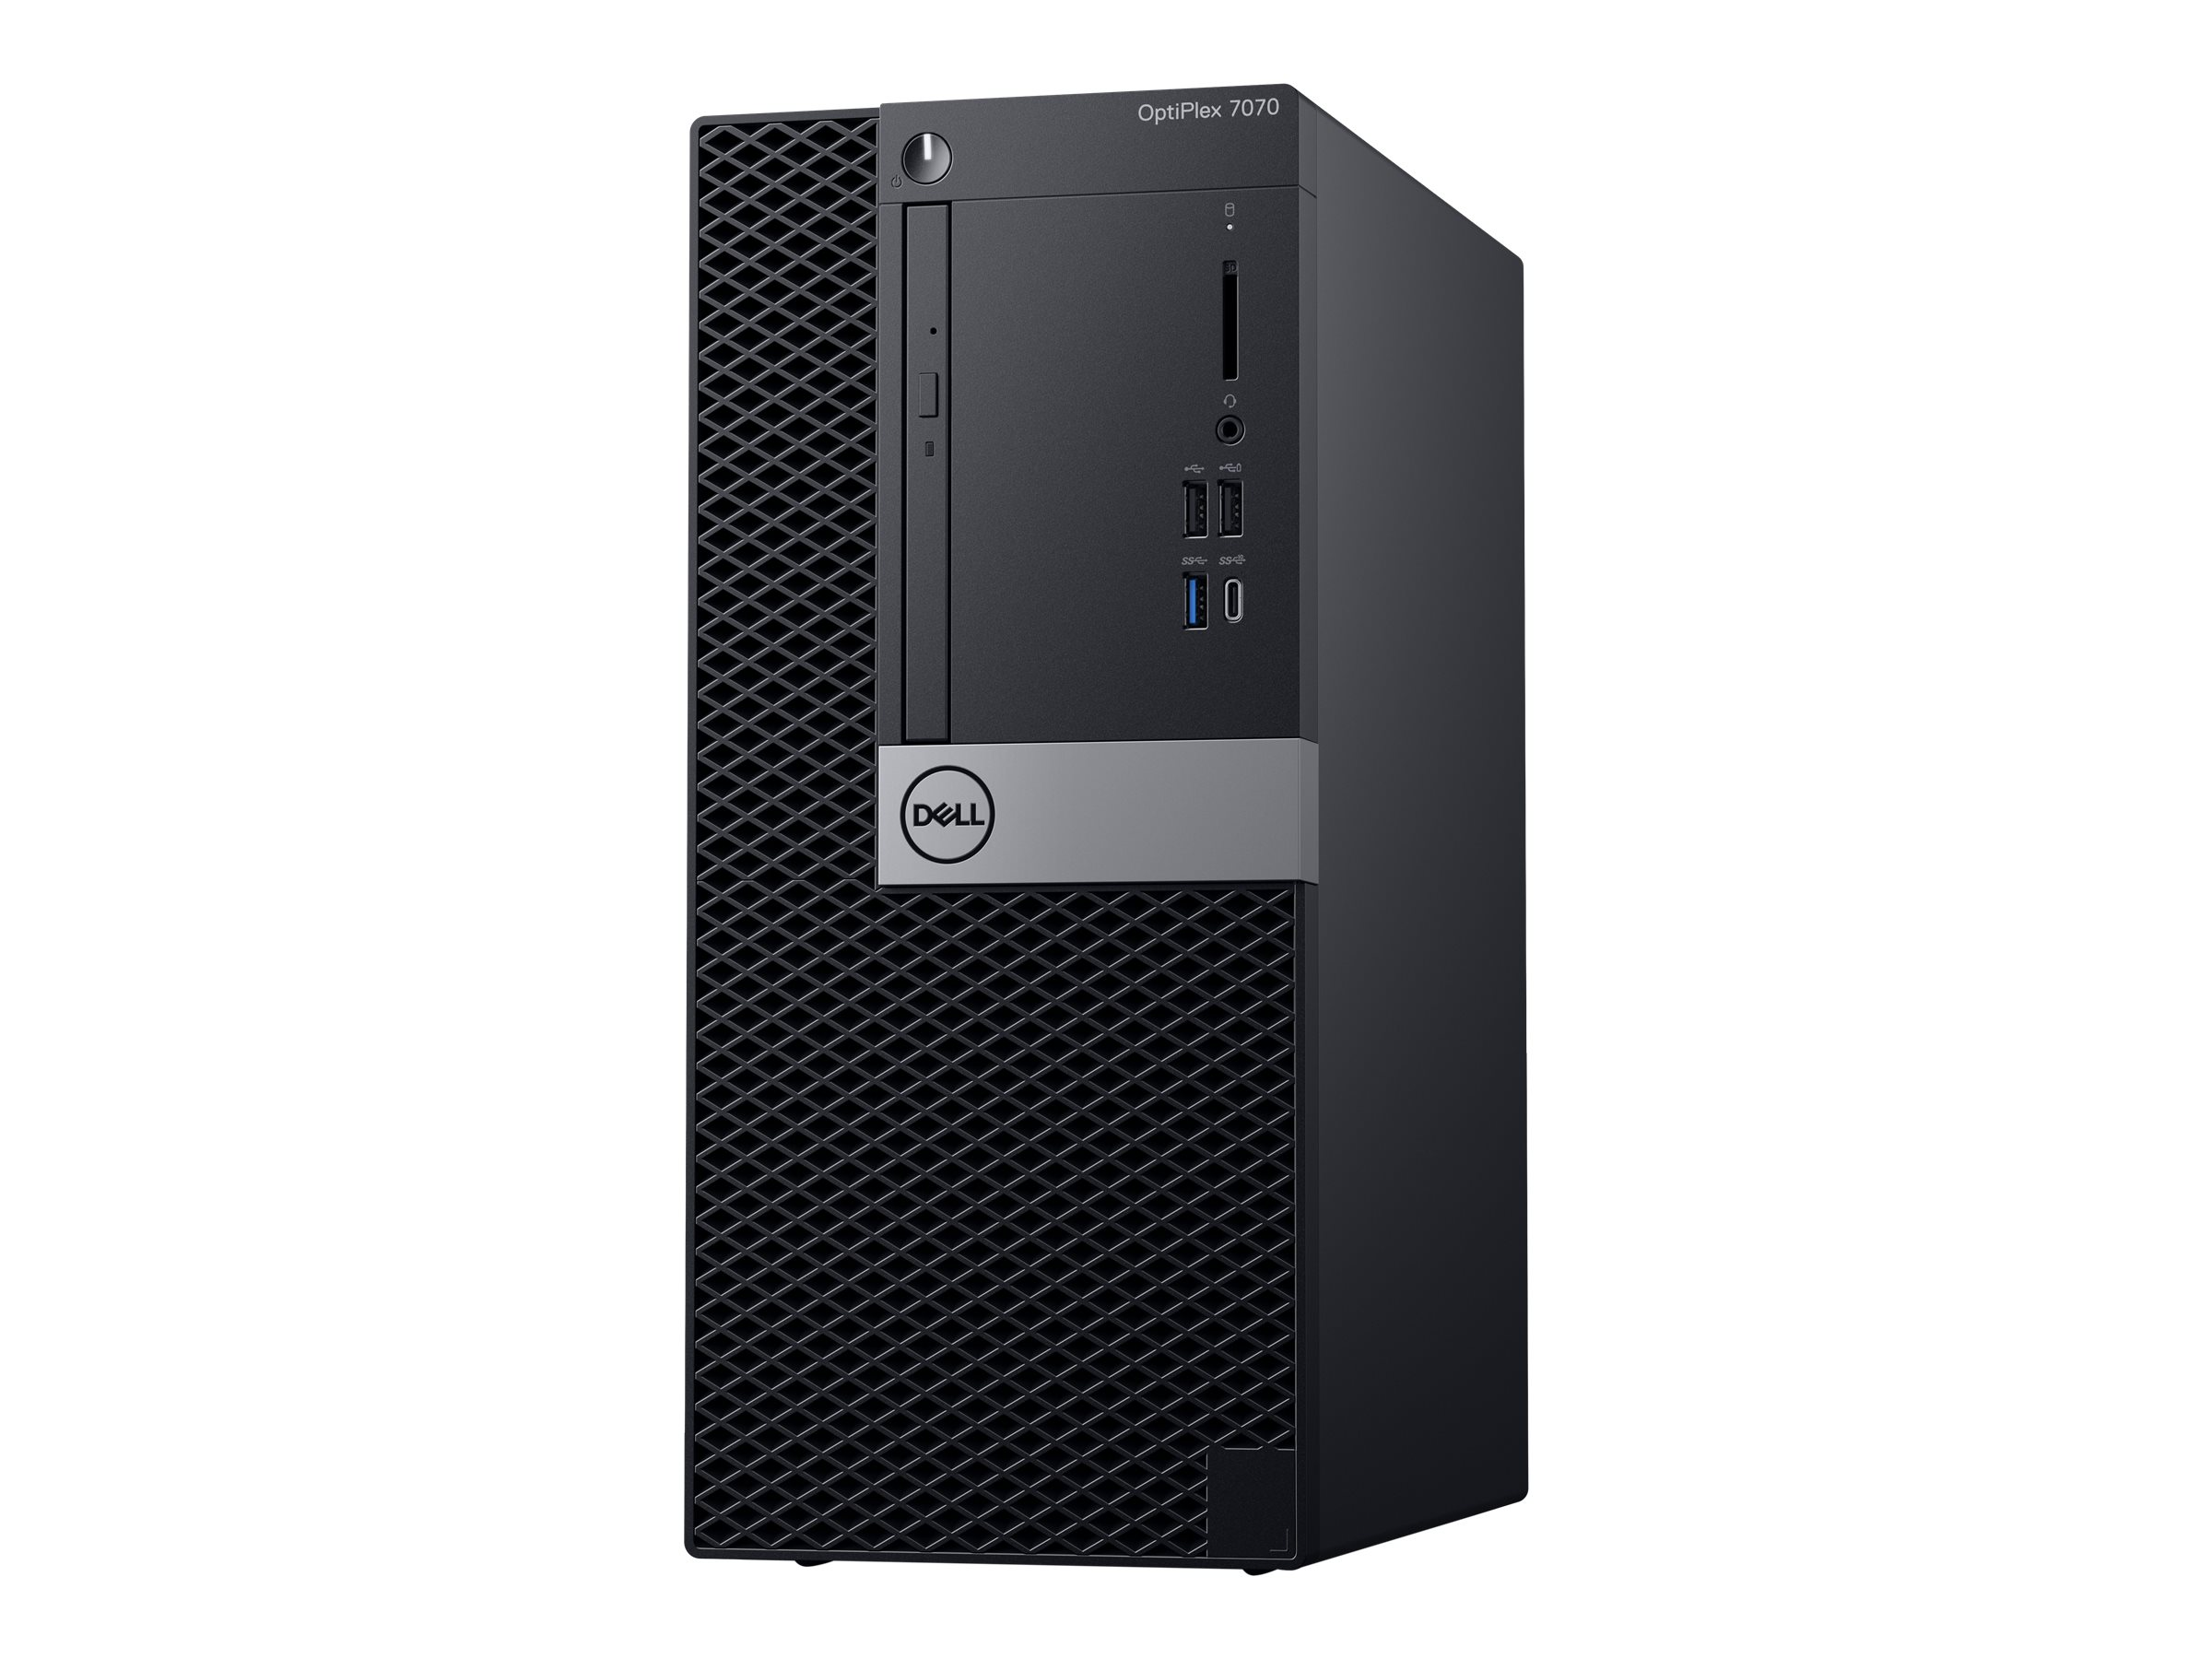 Dell OptiPlex 7070 - MT - 1 x Core i7 9700 / 3 GHz - RAM 16 GB - SSD 512 GB - DVD-Writer